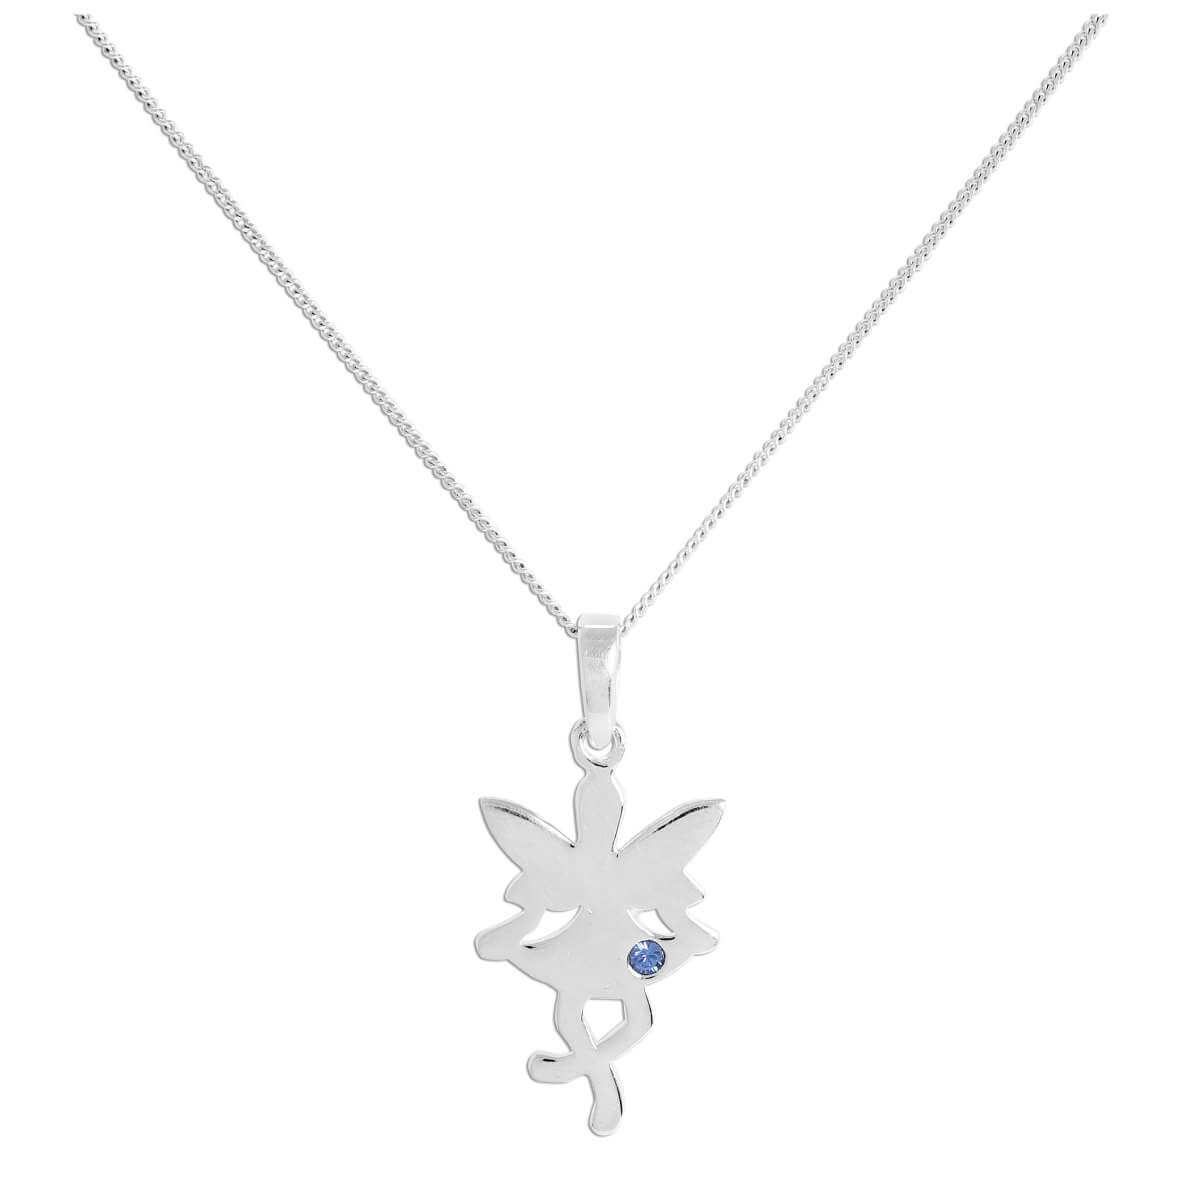 Sterling Silver & Sapphire CZ Crystal September Birthstone Funky Fairy Pendant Necklace 14 - 32 Inches